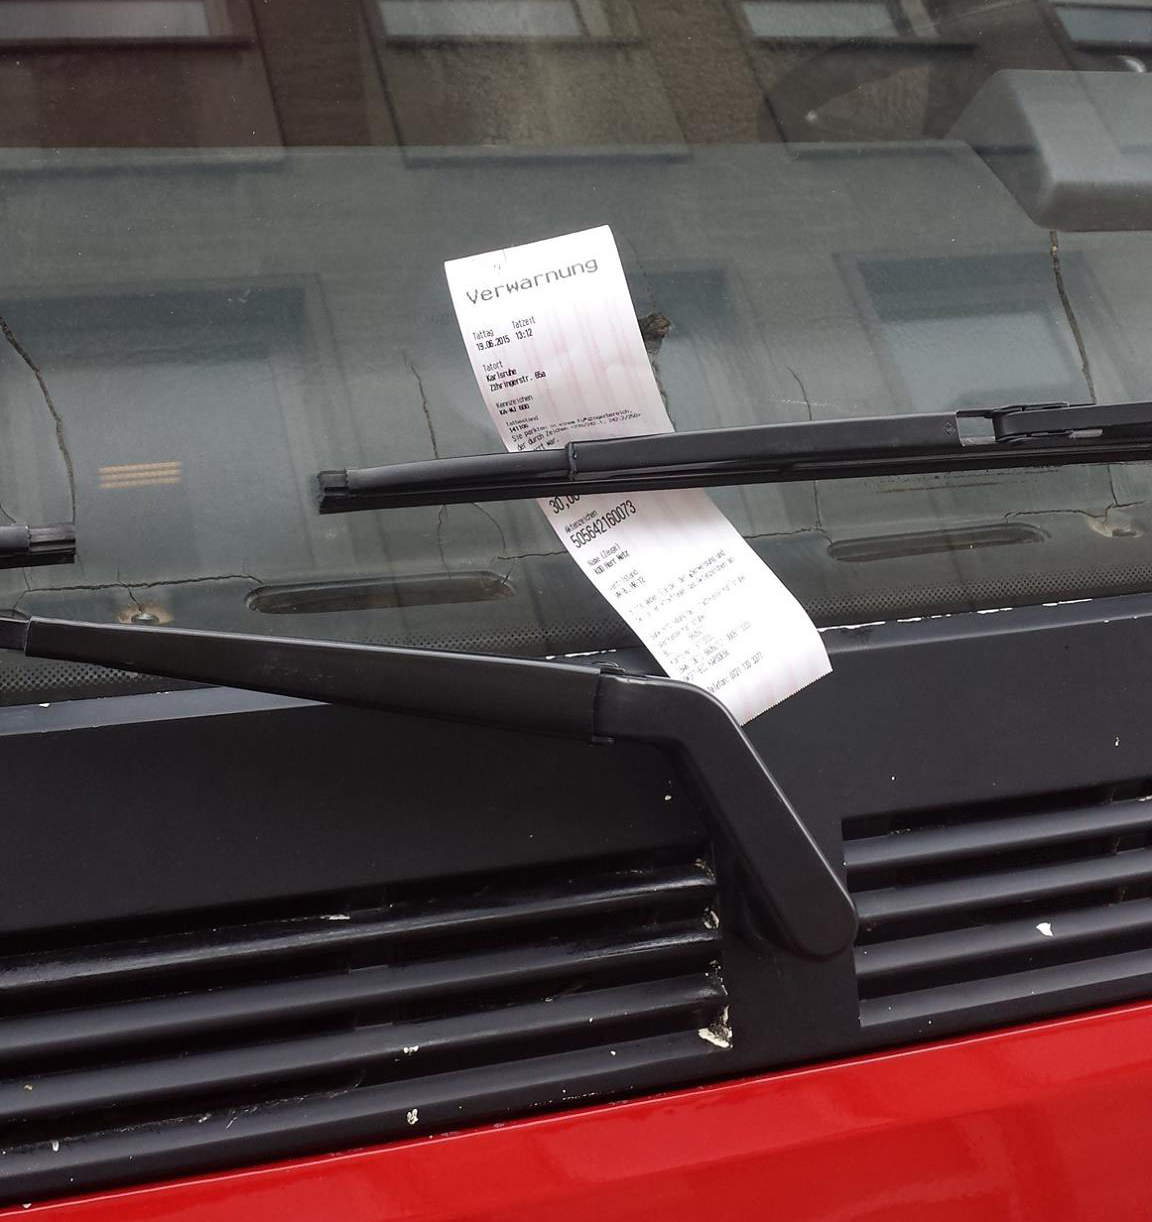 Cop issues parking ticket to a statue.